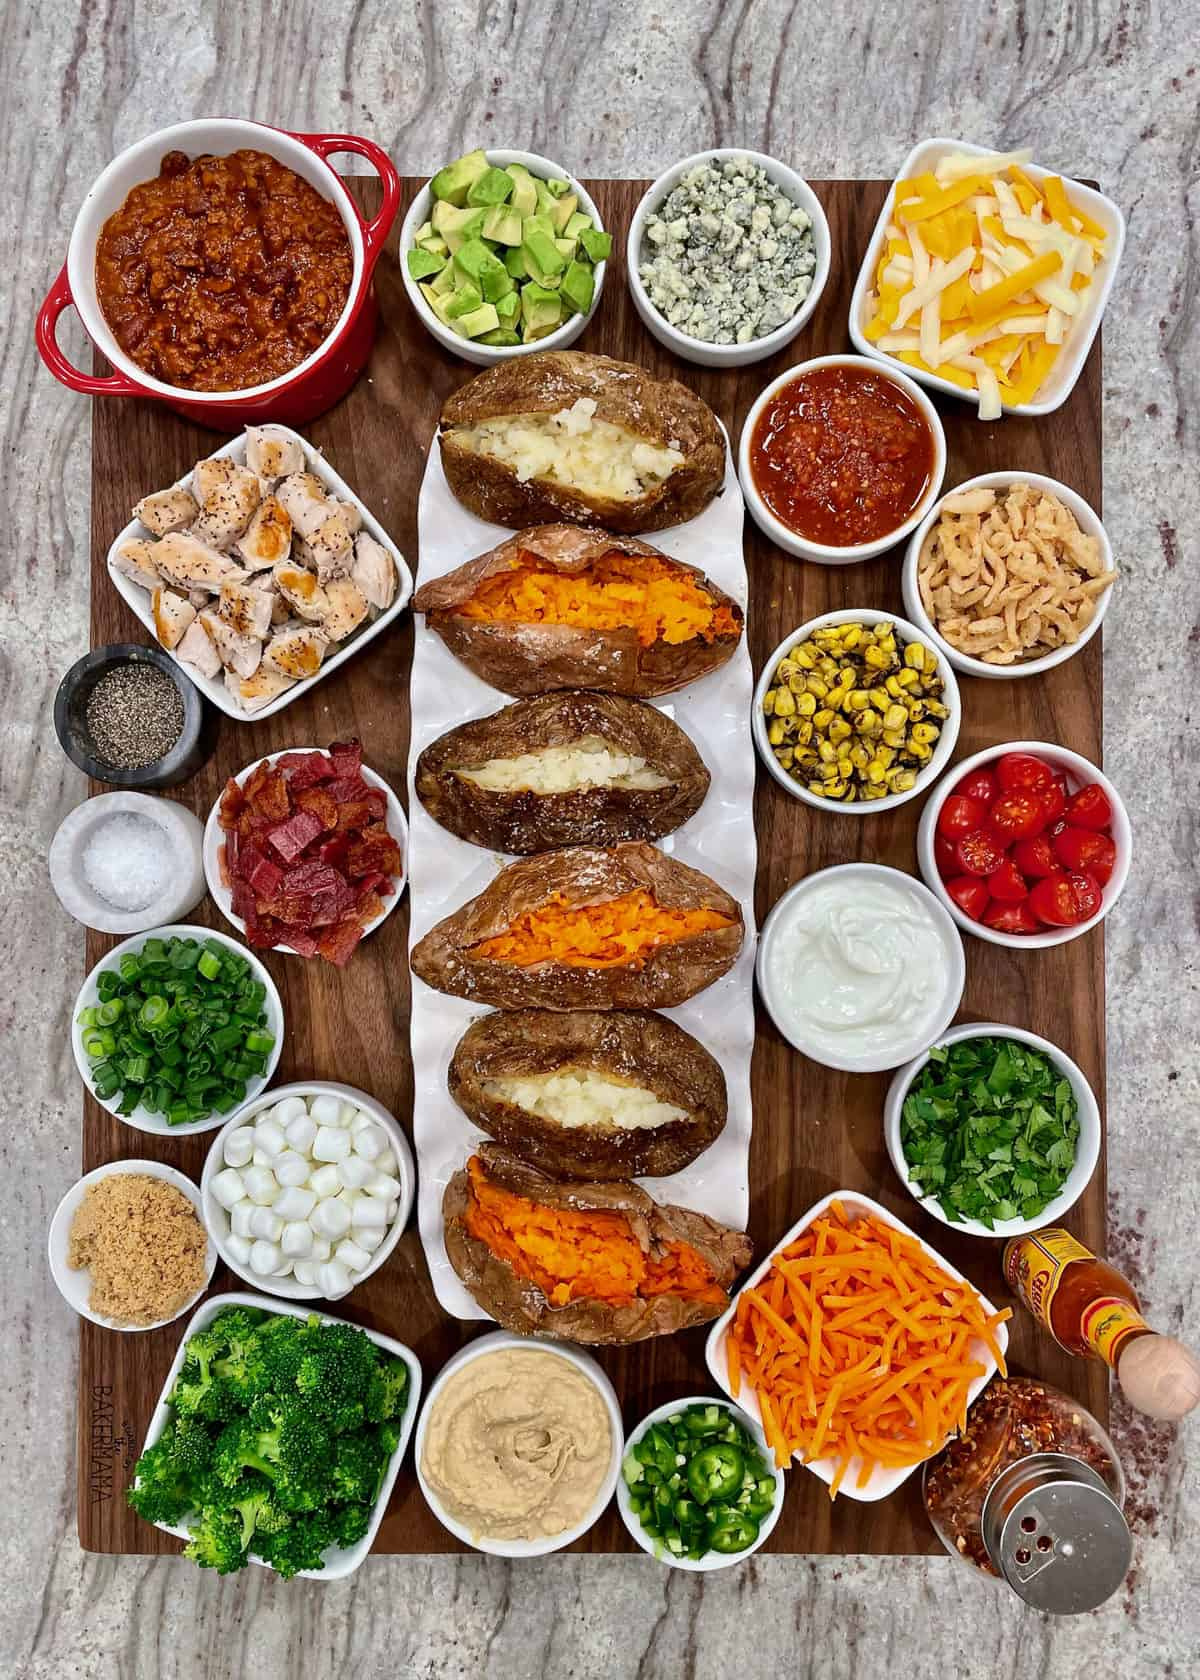 Build-Your-Own Baked Potato Board by The BakerMama